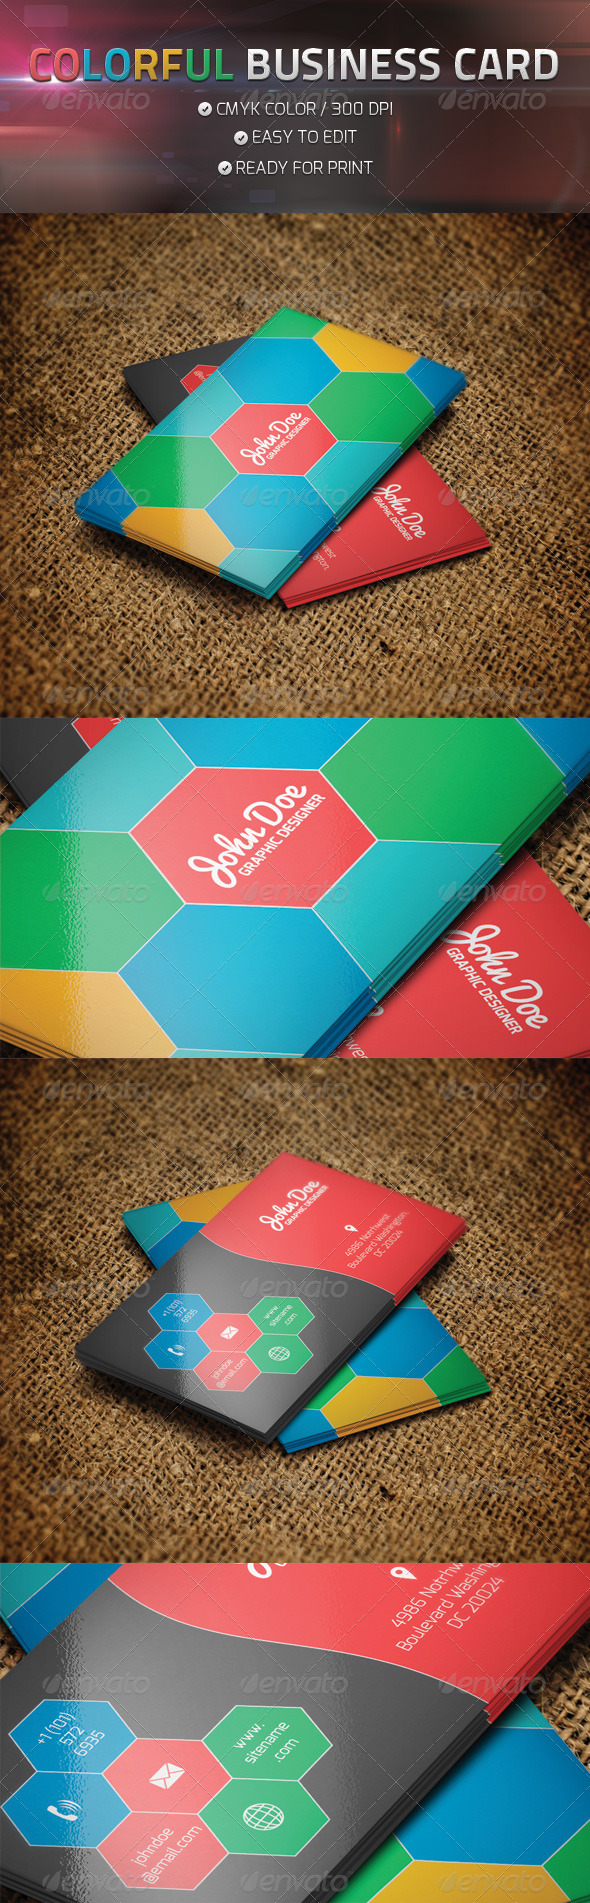 GraphicRiver COLORFUL BUSINESS CARD 4713307